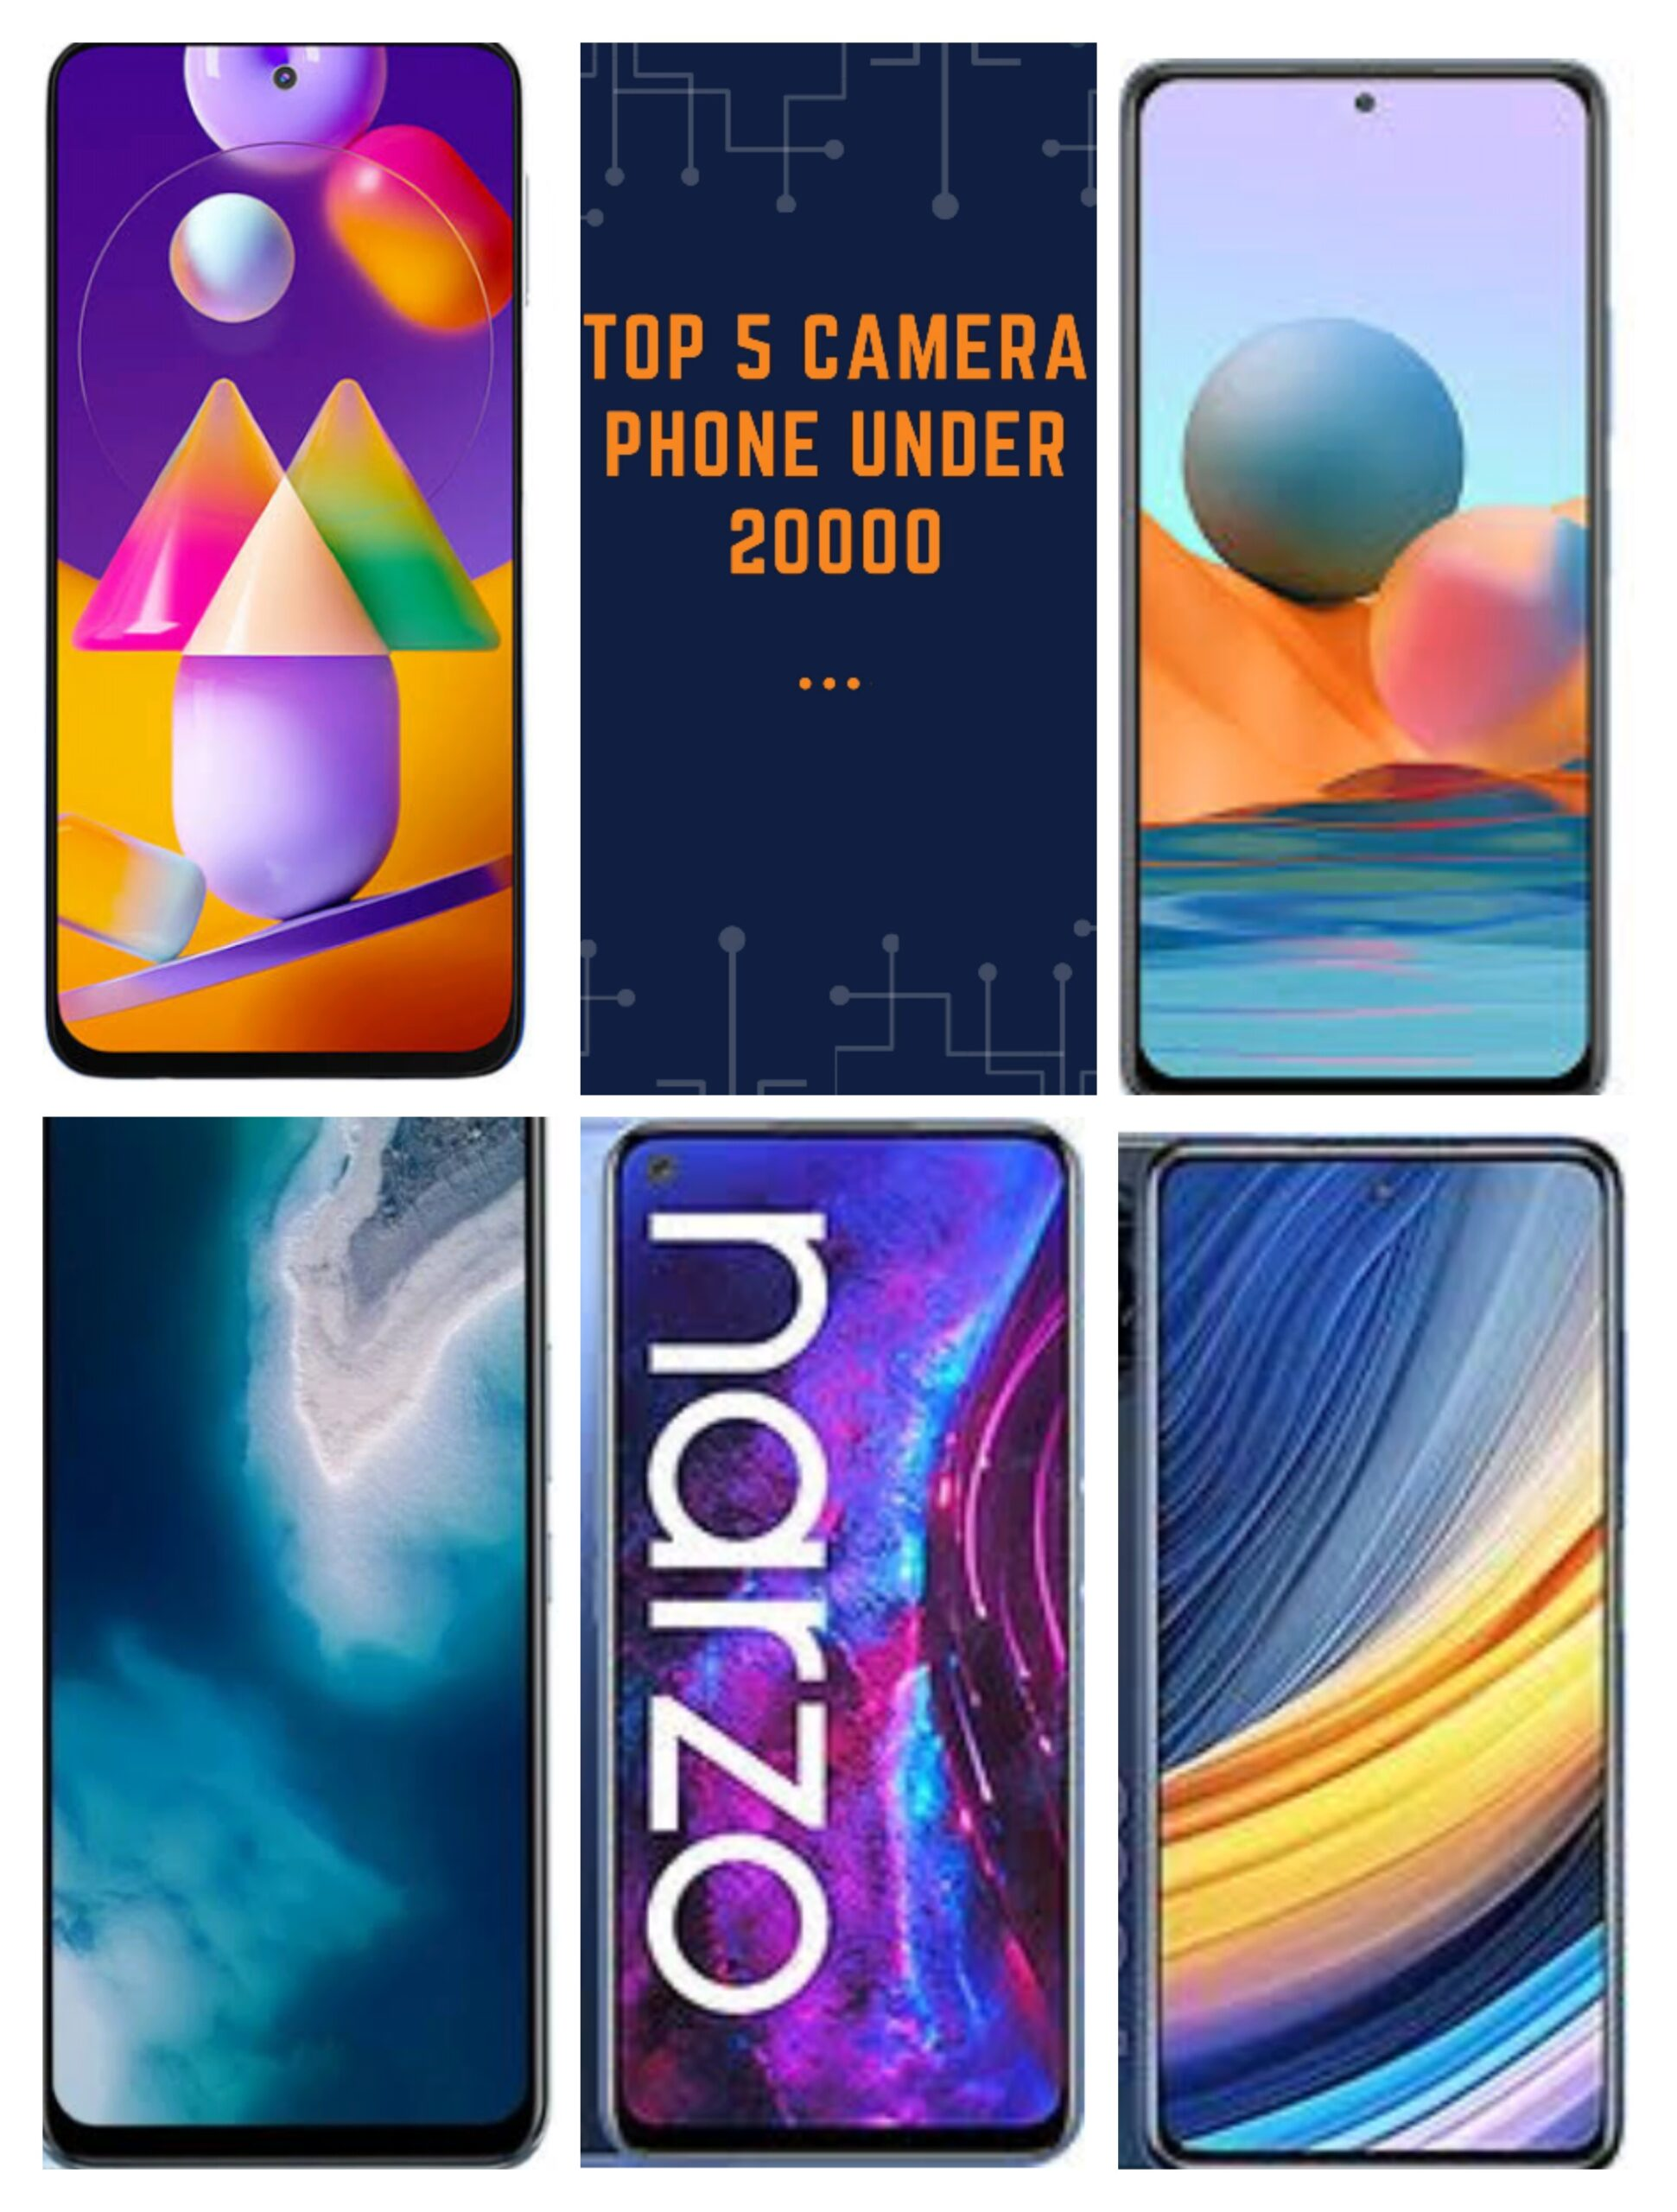 Top 5 Phone Under Rs. 20000